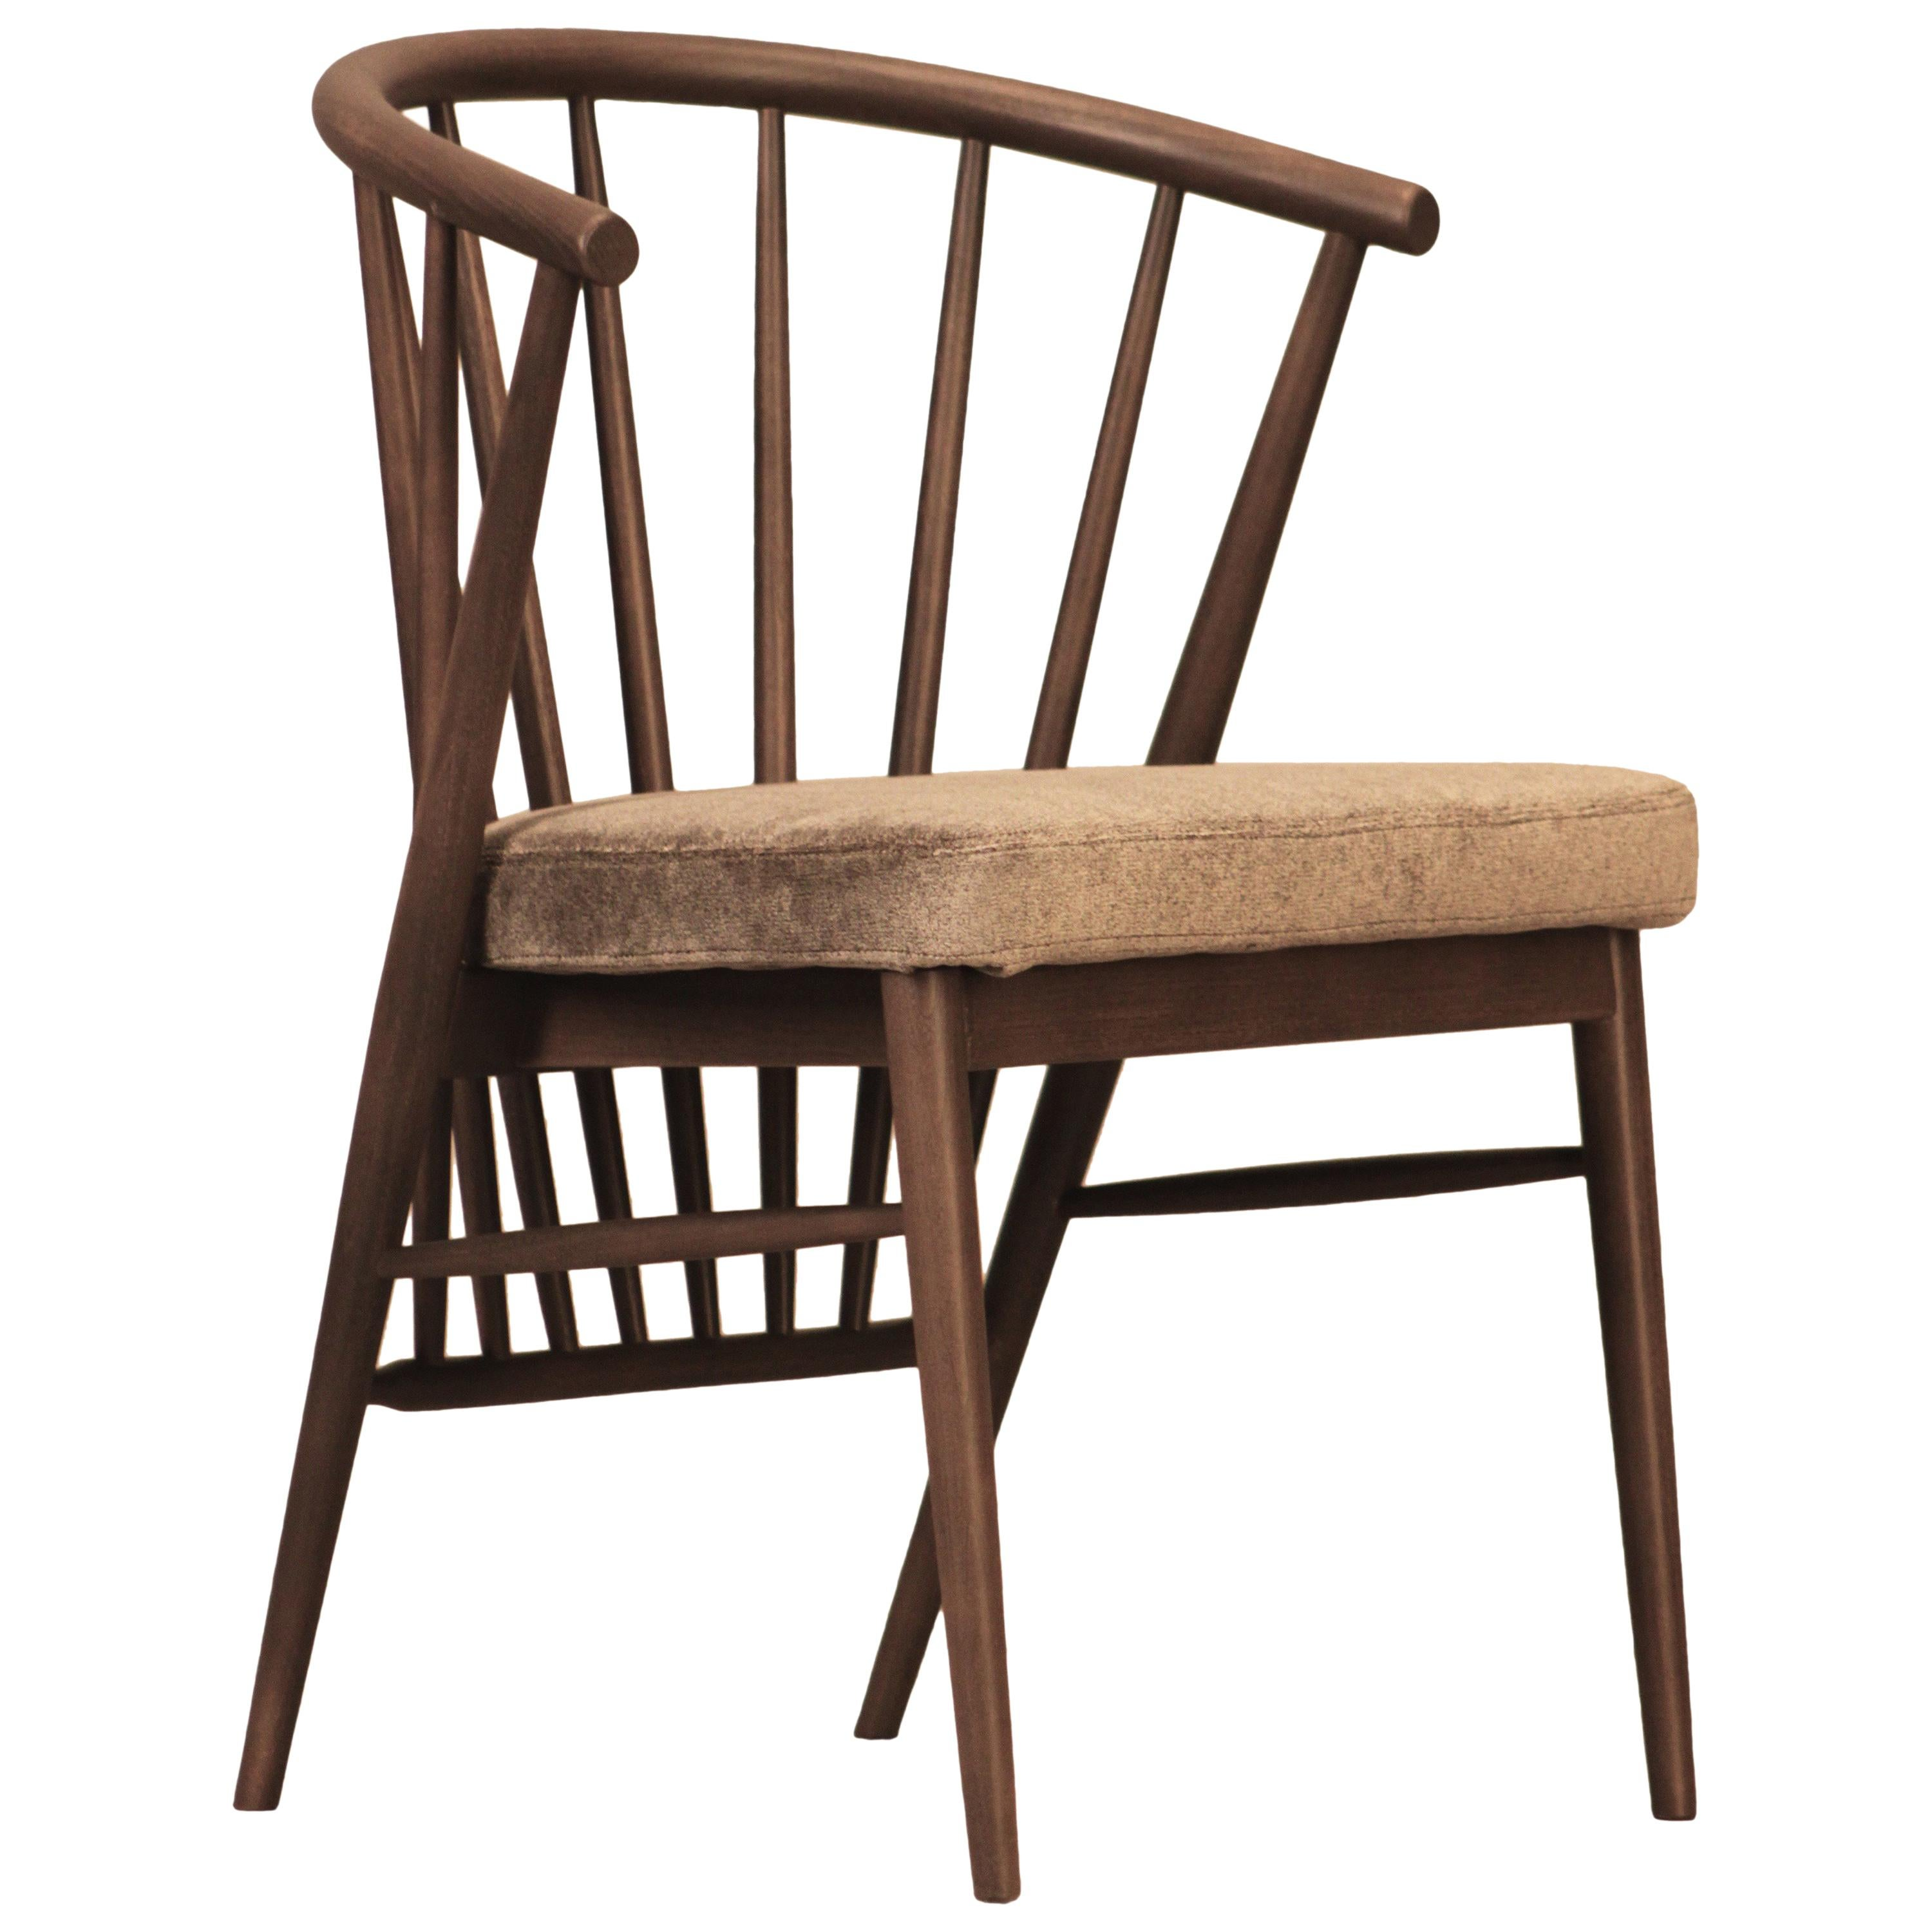 Jenny, Contemporary Upholstered Dining Chair in Hand Turned Ashwood, by Morelato